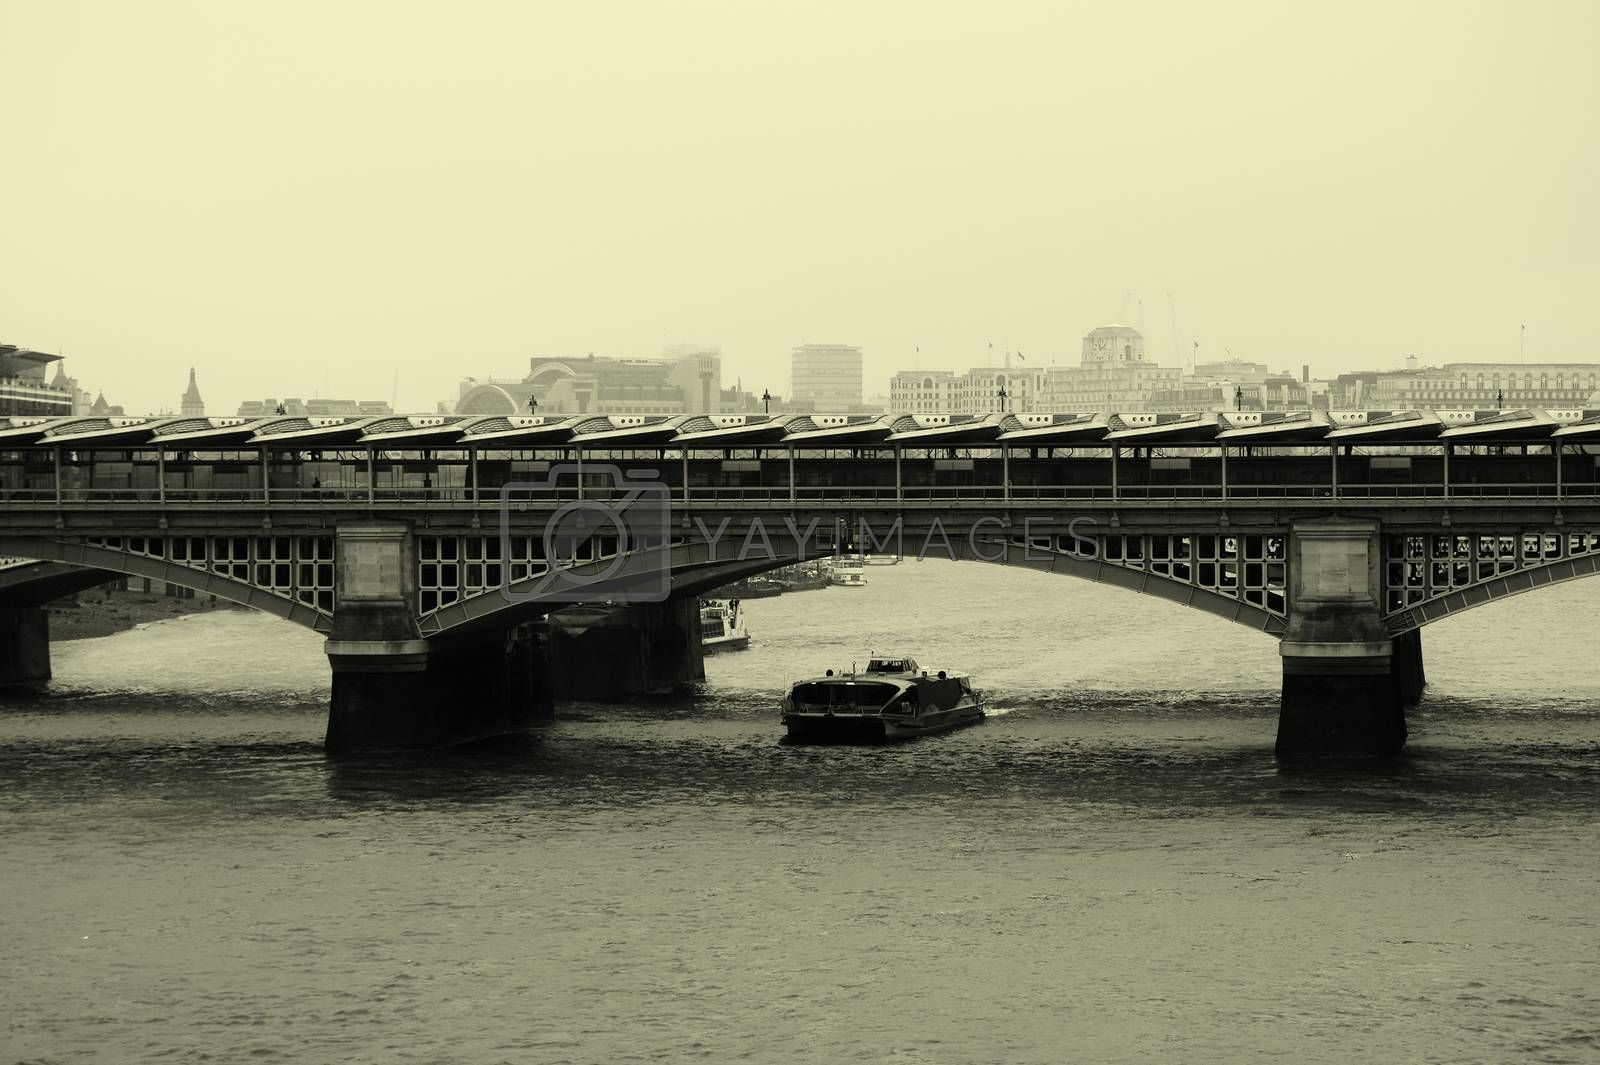 The Blackfriars bridge over the River Thames in London with solar panels on the roof.